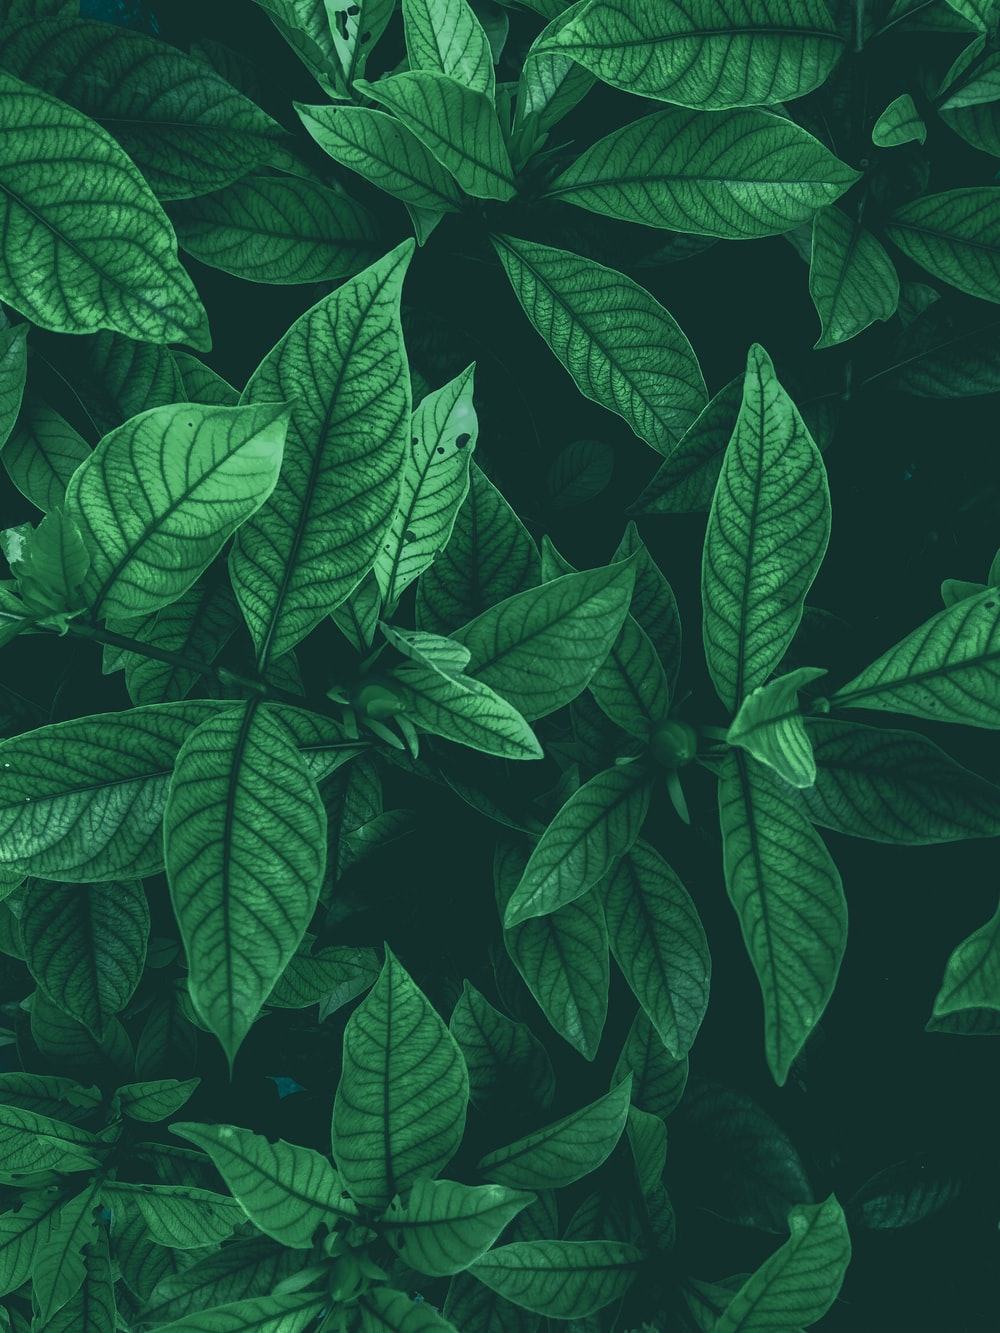 900 Leaf Background Images Download Hd Backgrounds On Unsplash Watercolor illustration of exotics colorful leaves and branch with cute quote. 900 leaf background images download